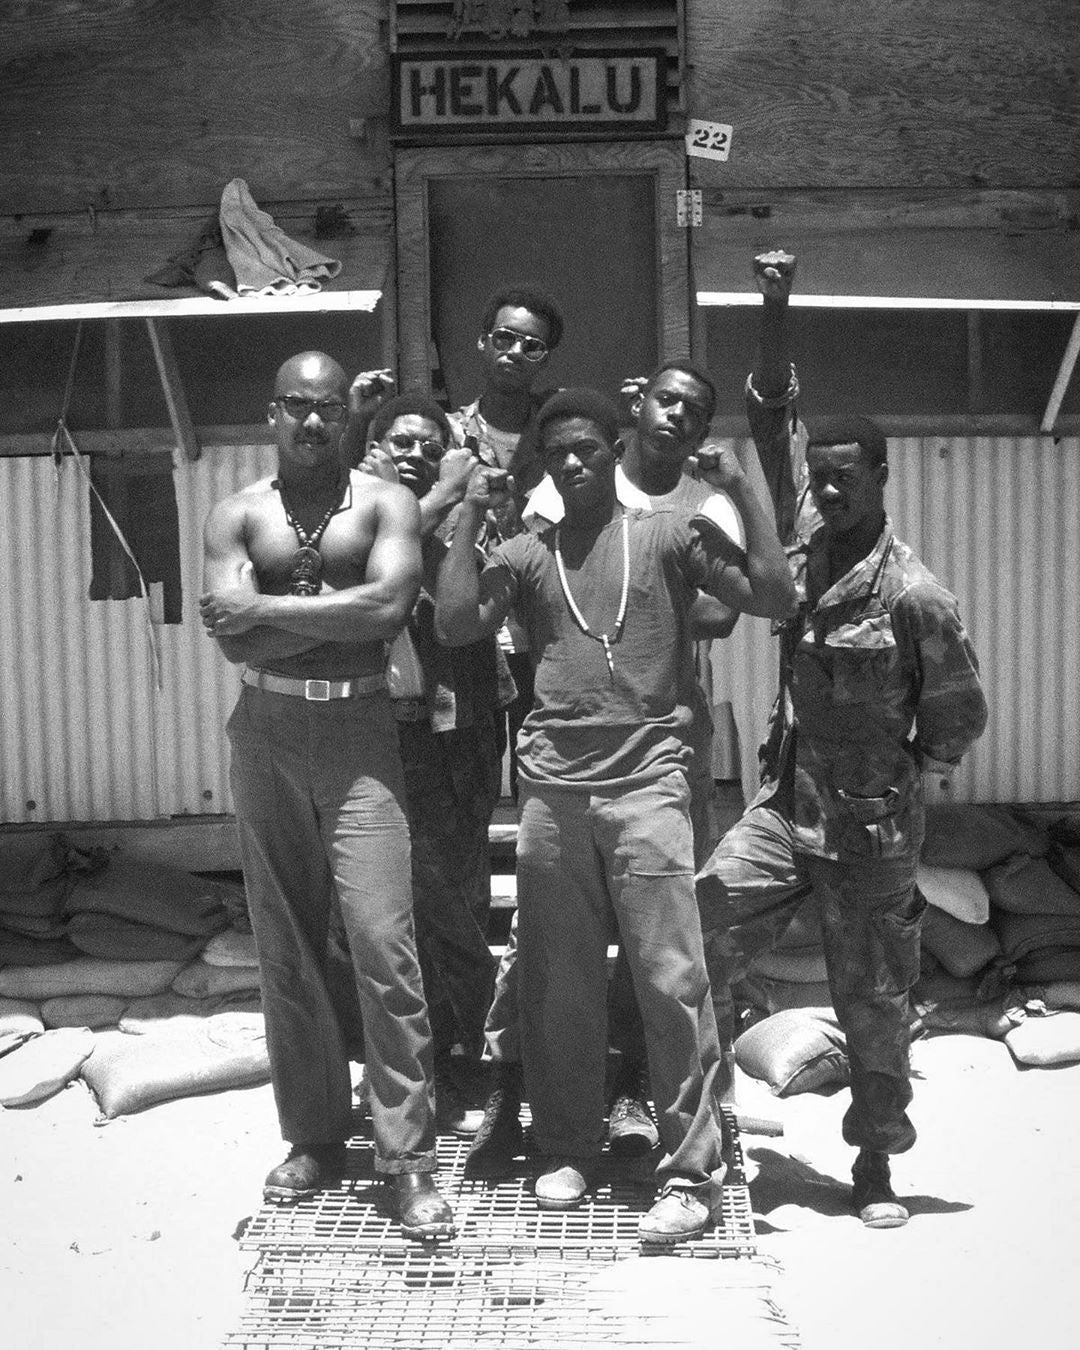 Soldiers during the Vietnam war wearing og-107 fatigues